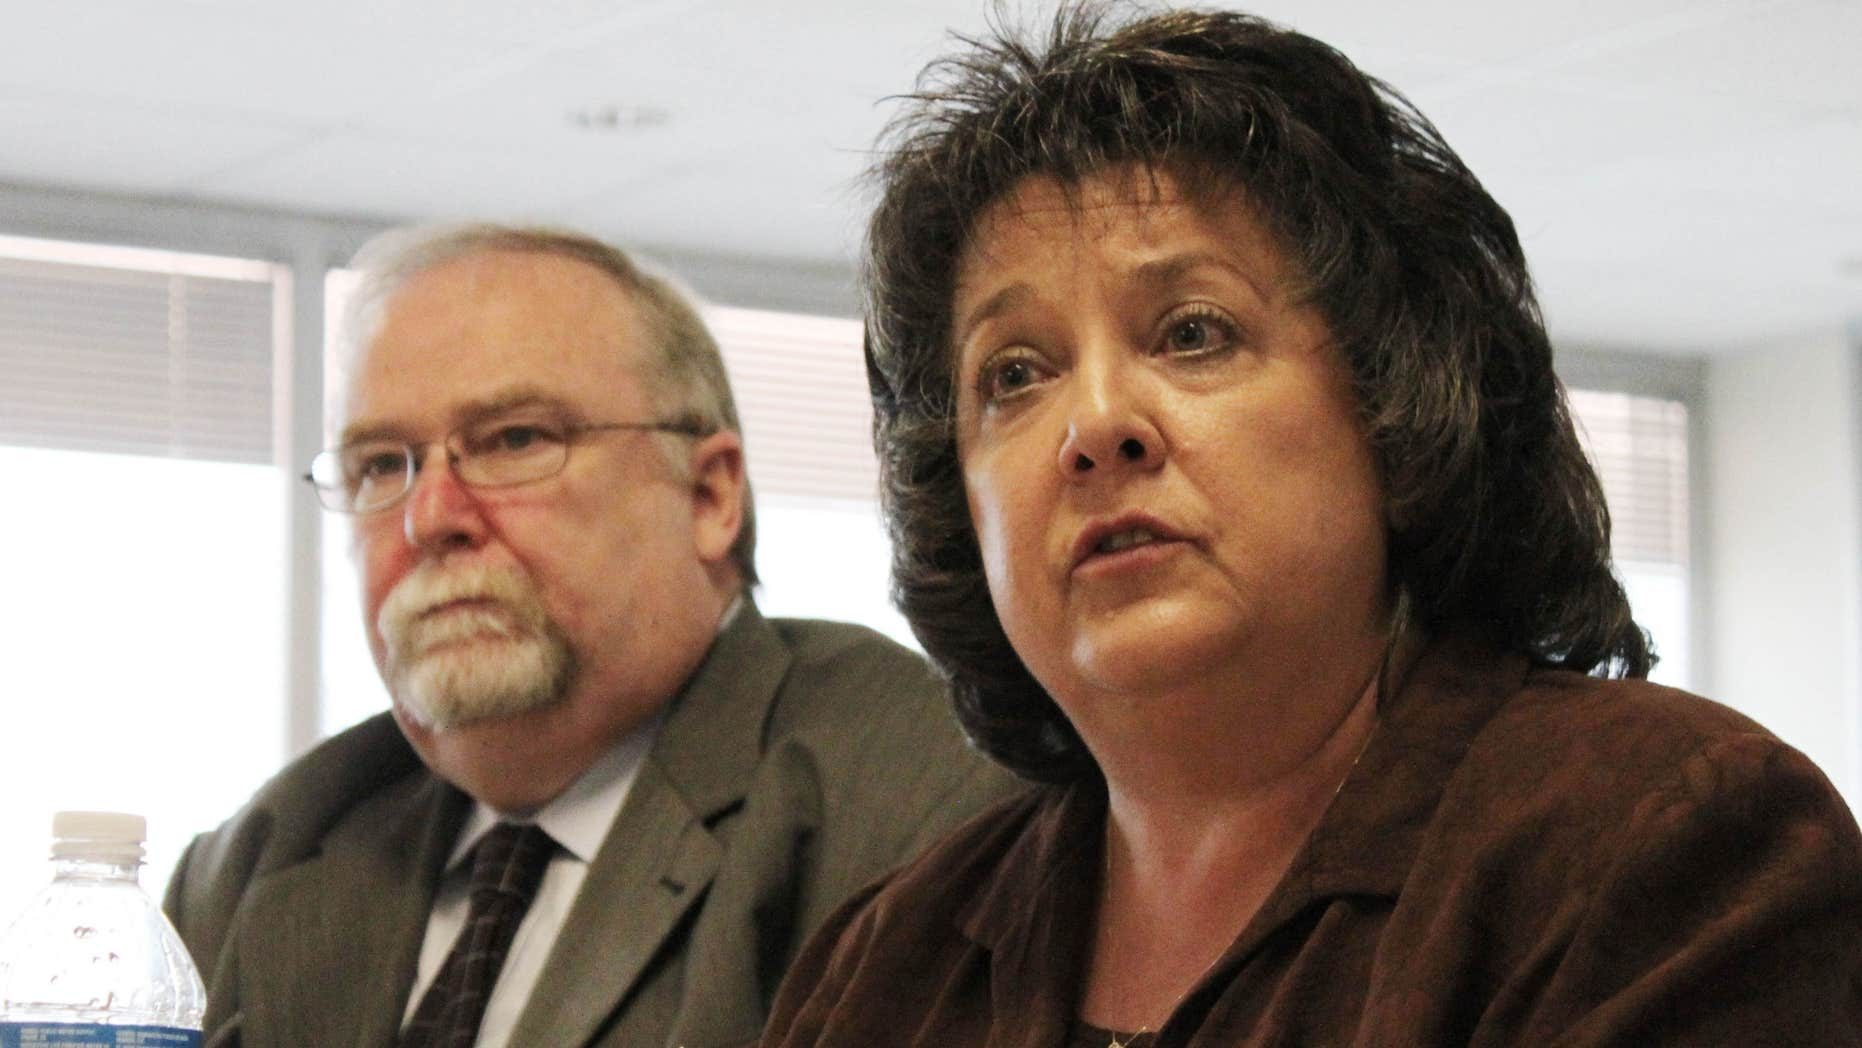 July 16, 2011: Secretary of State Dianna Duran, right, talks about her office's efforts to ensure the accuracy of the state's voter registration rolls during an interim legislative committee hearing in Albuquerque, N.M.